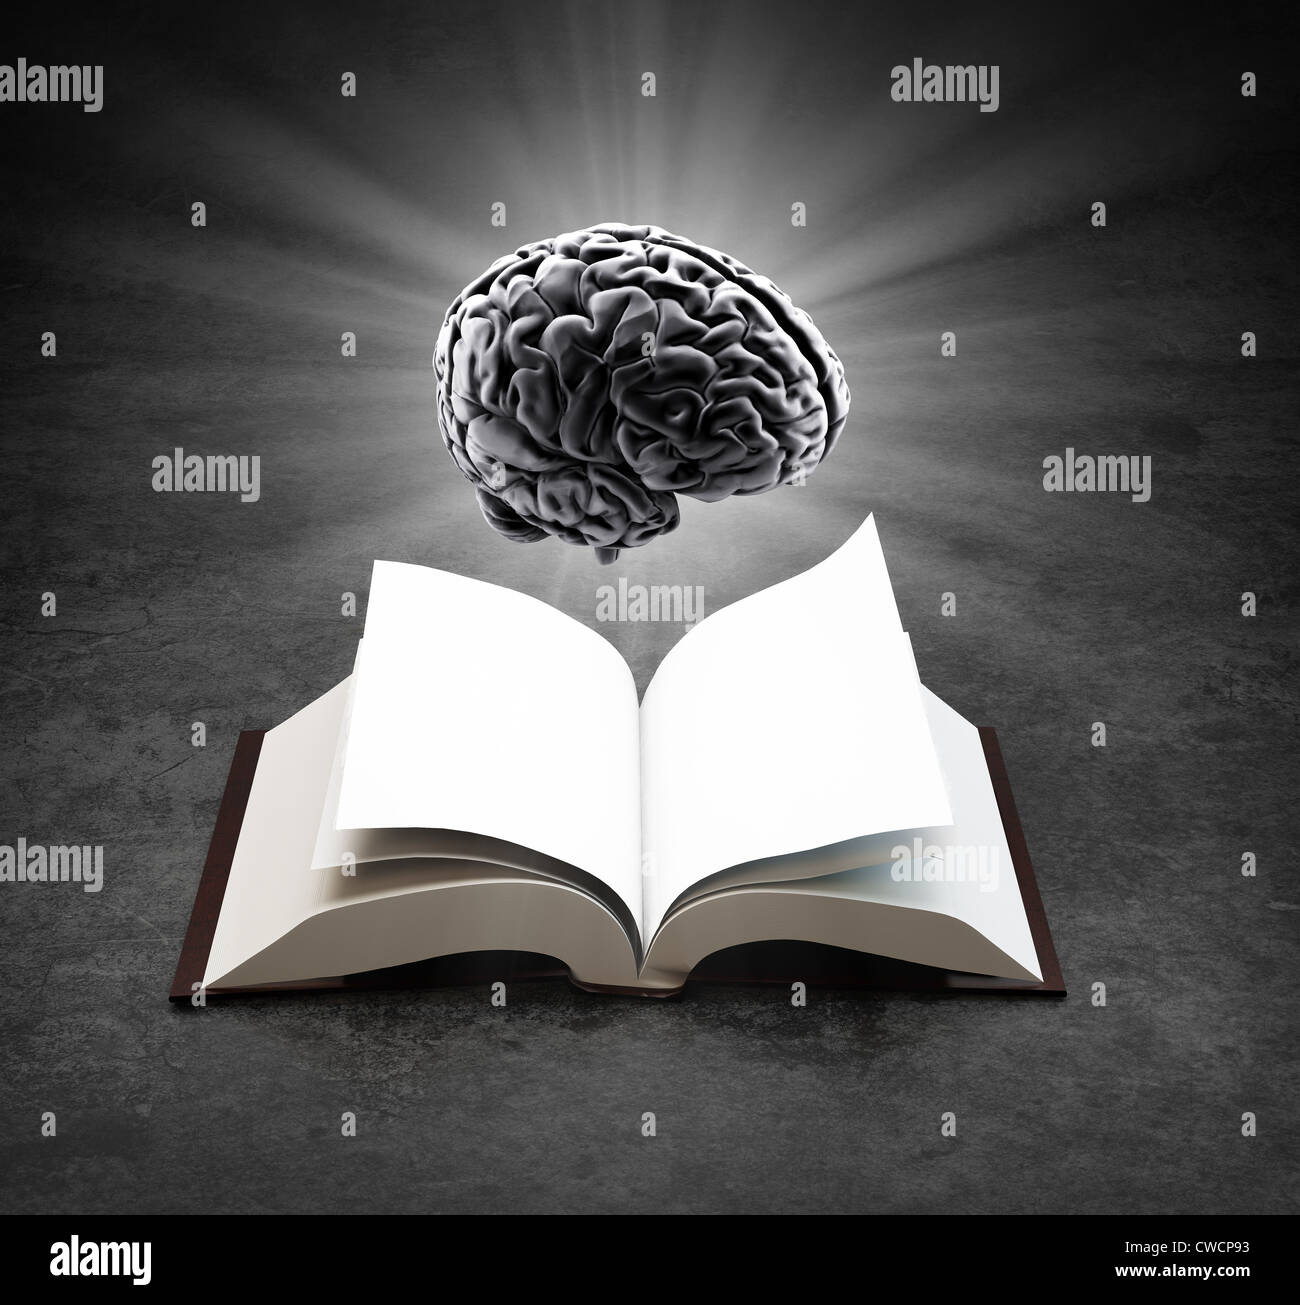 Open book with a glowing brain - knowledge and creativity concept - Stock Image